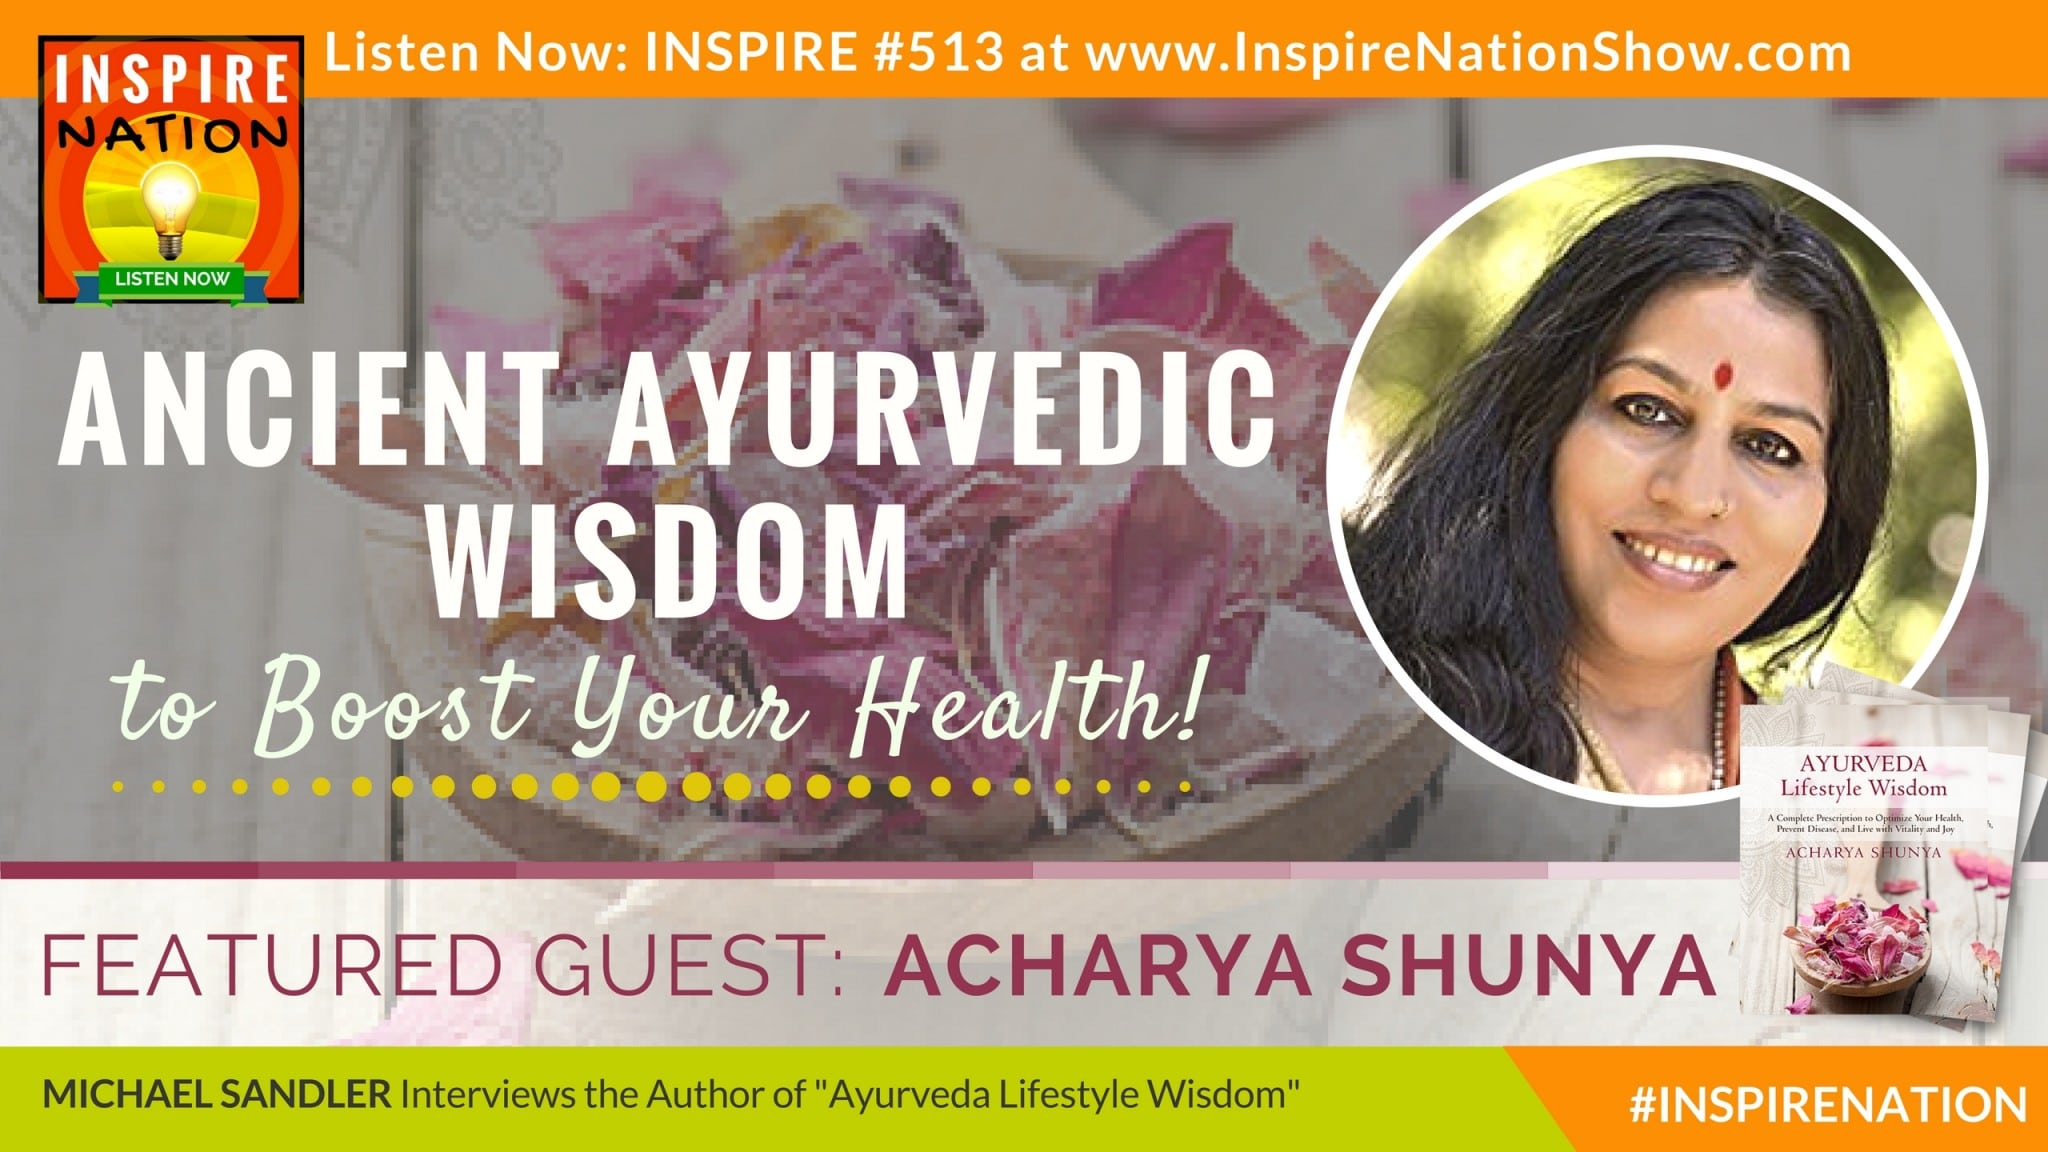 Listen to Michael Sandler's interview with Acharya Shunya on ayurvedic wisdom to boost your health!